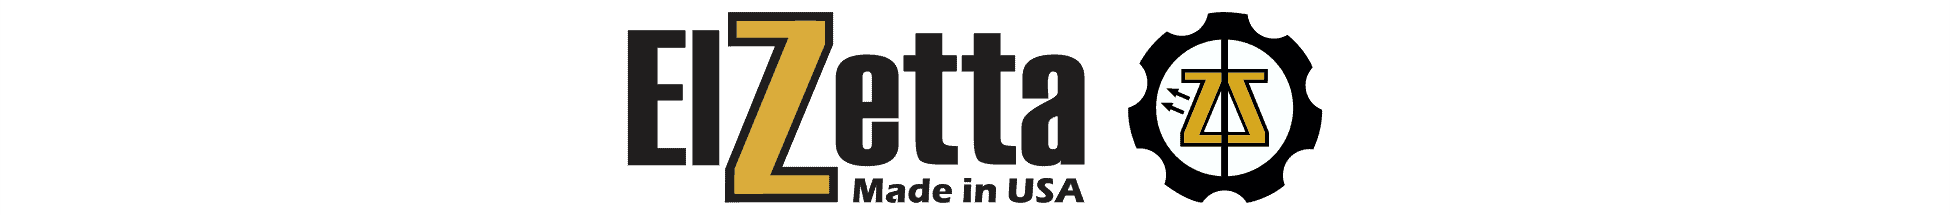 Elzetta Tactical Lighting Retina Logo